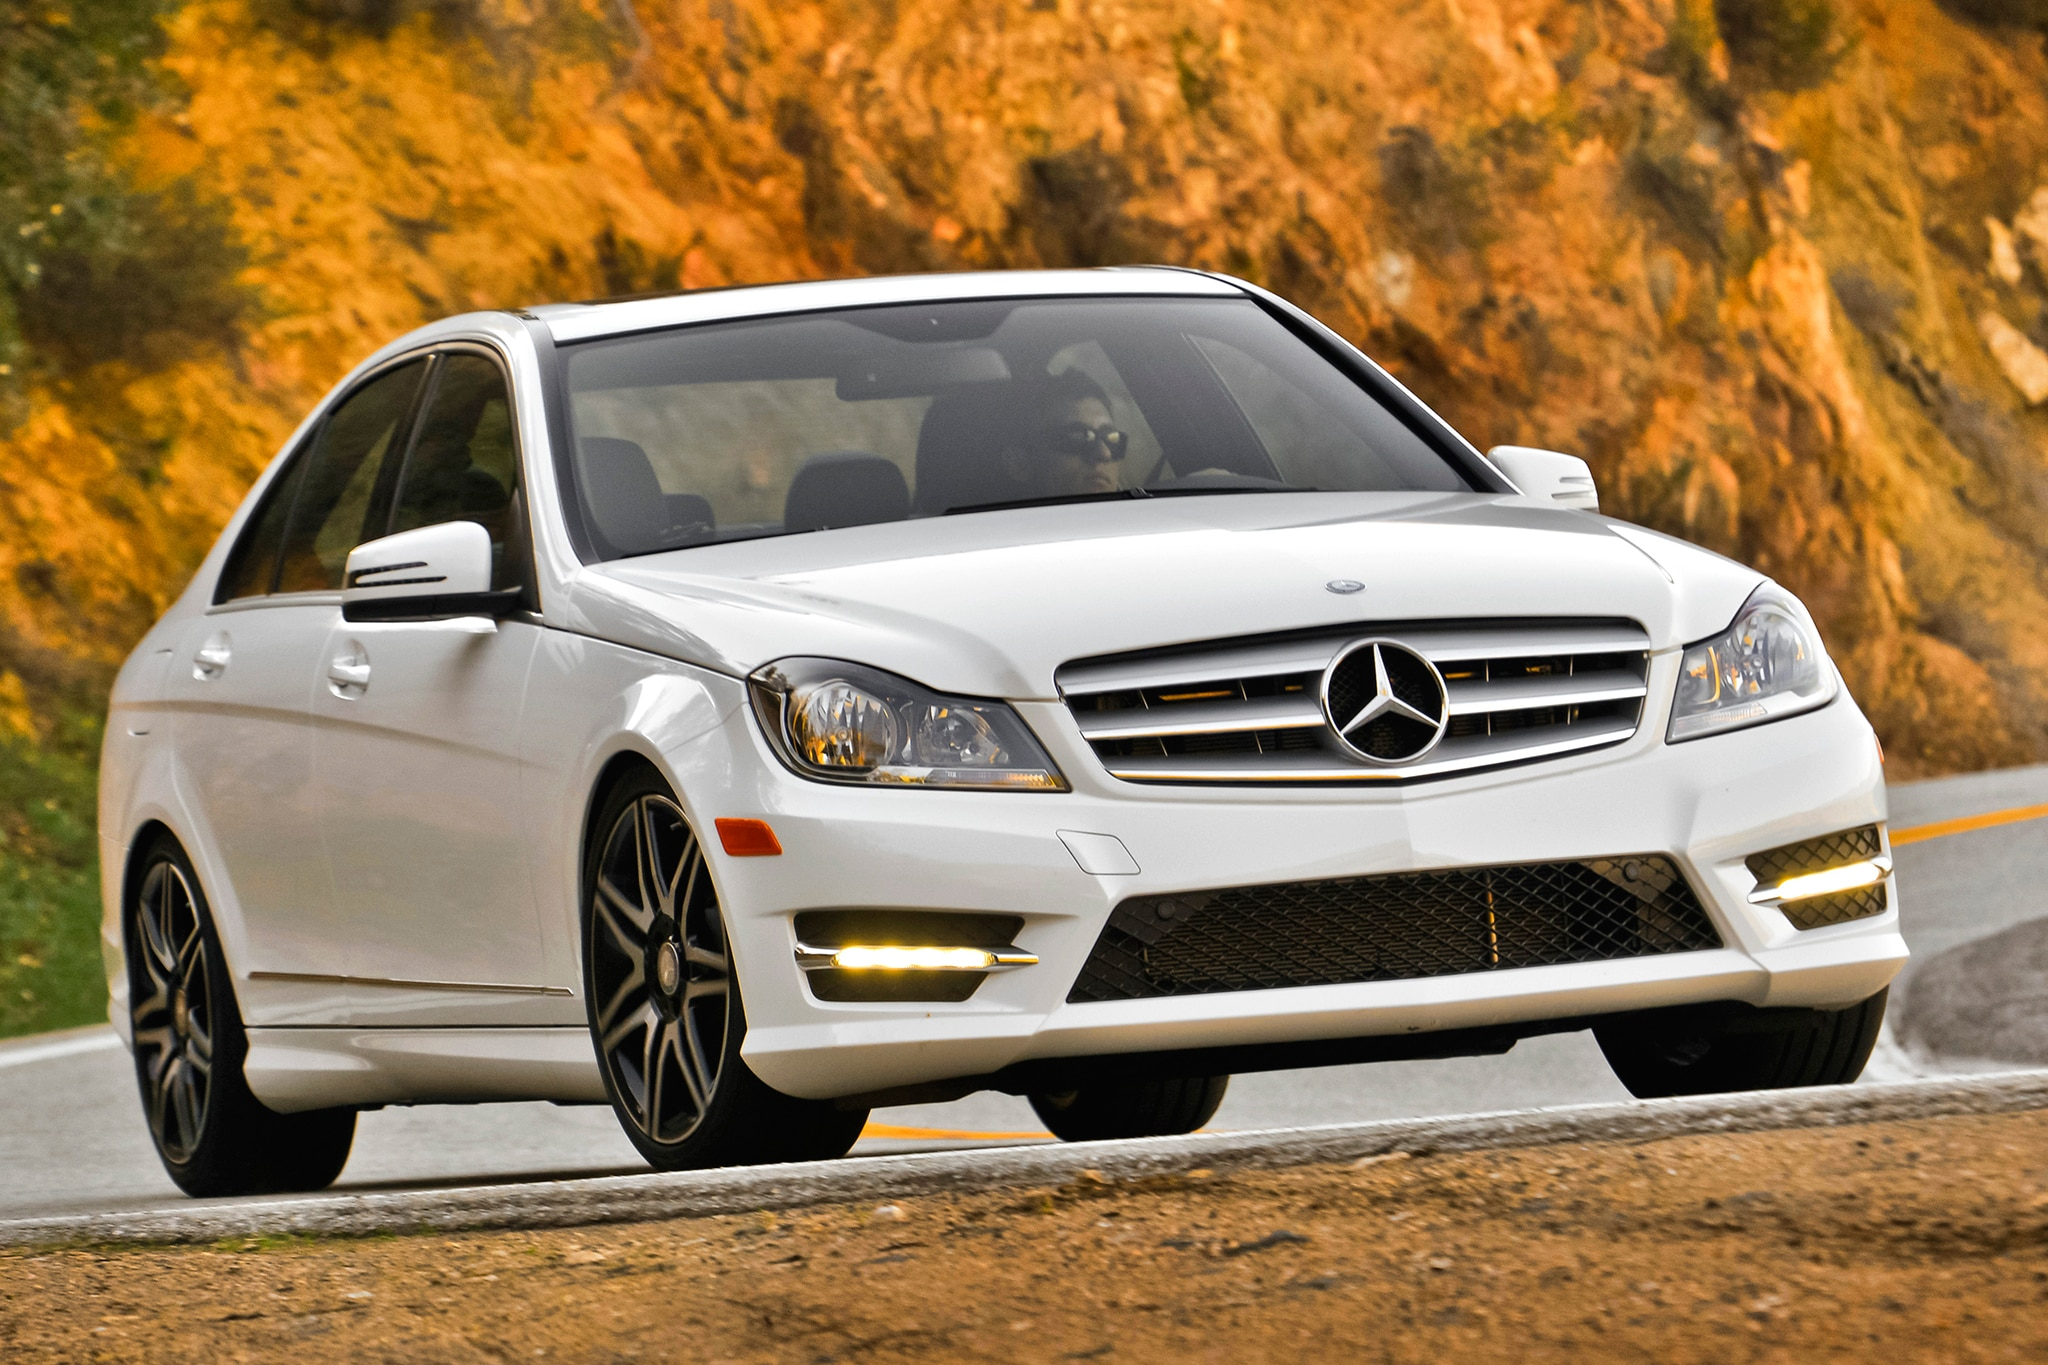 2013 Mercedes Benz C300 4MATIC Front View In Motion 11